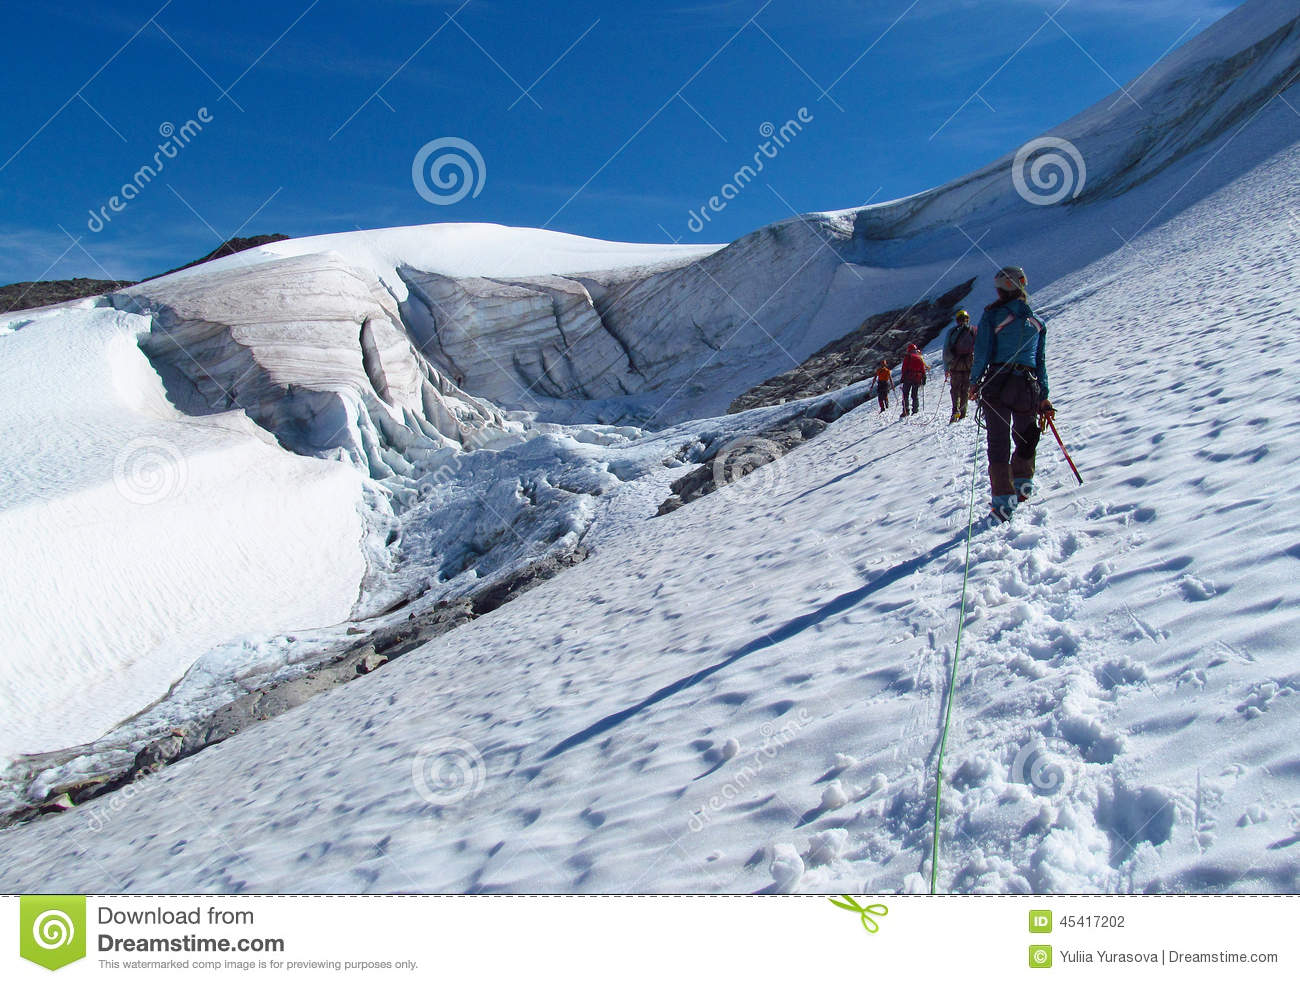 People climbers, climbing snow summit, rocky mountain peaks and glacier in Norway